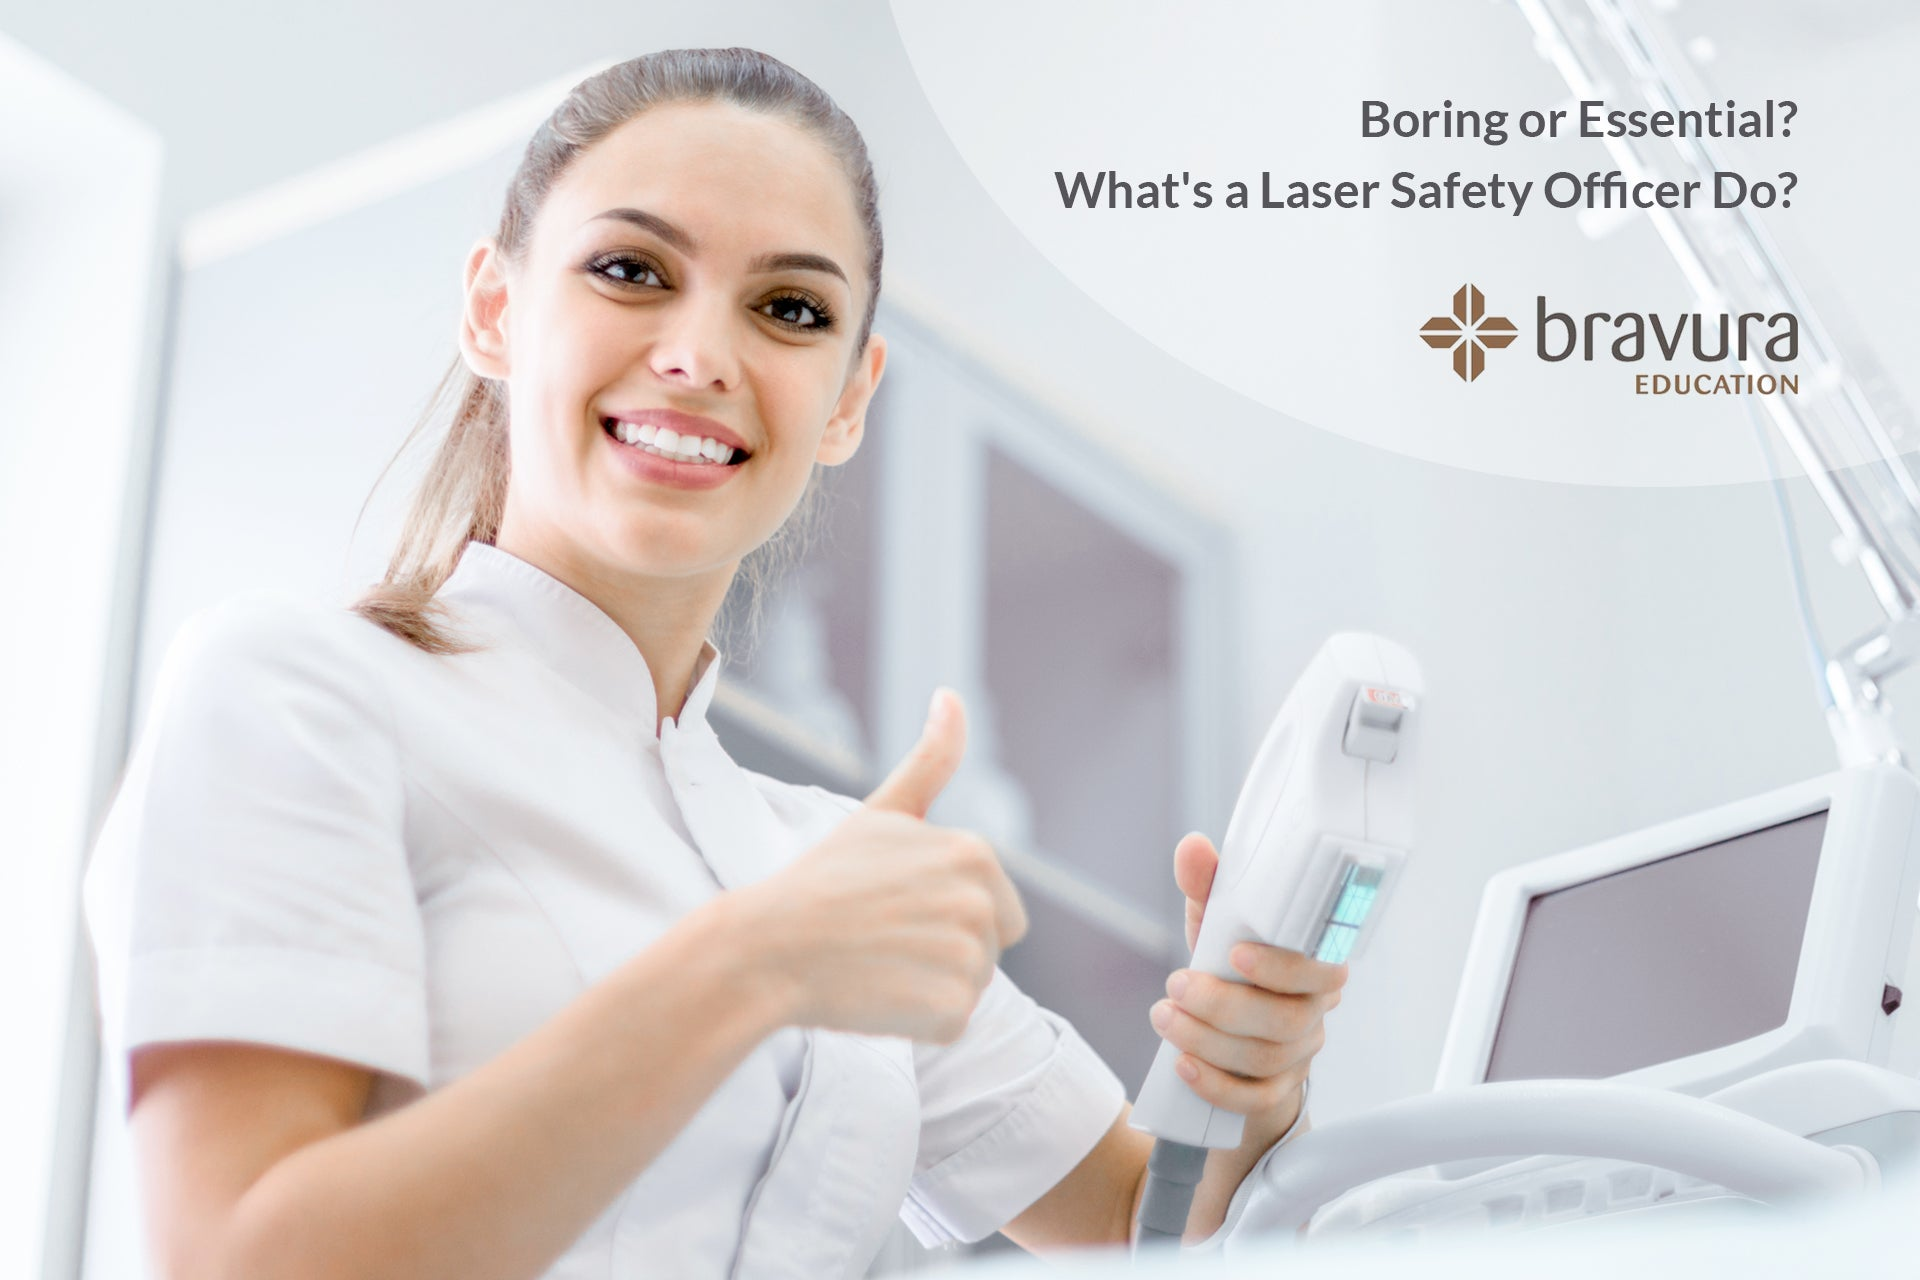 Boring or Essential? What's a Laser Safety Officer Do?